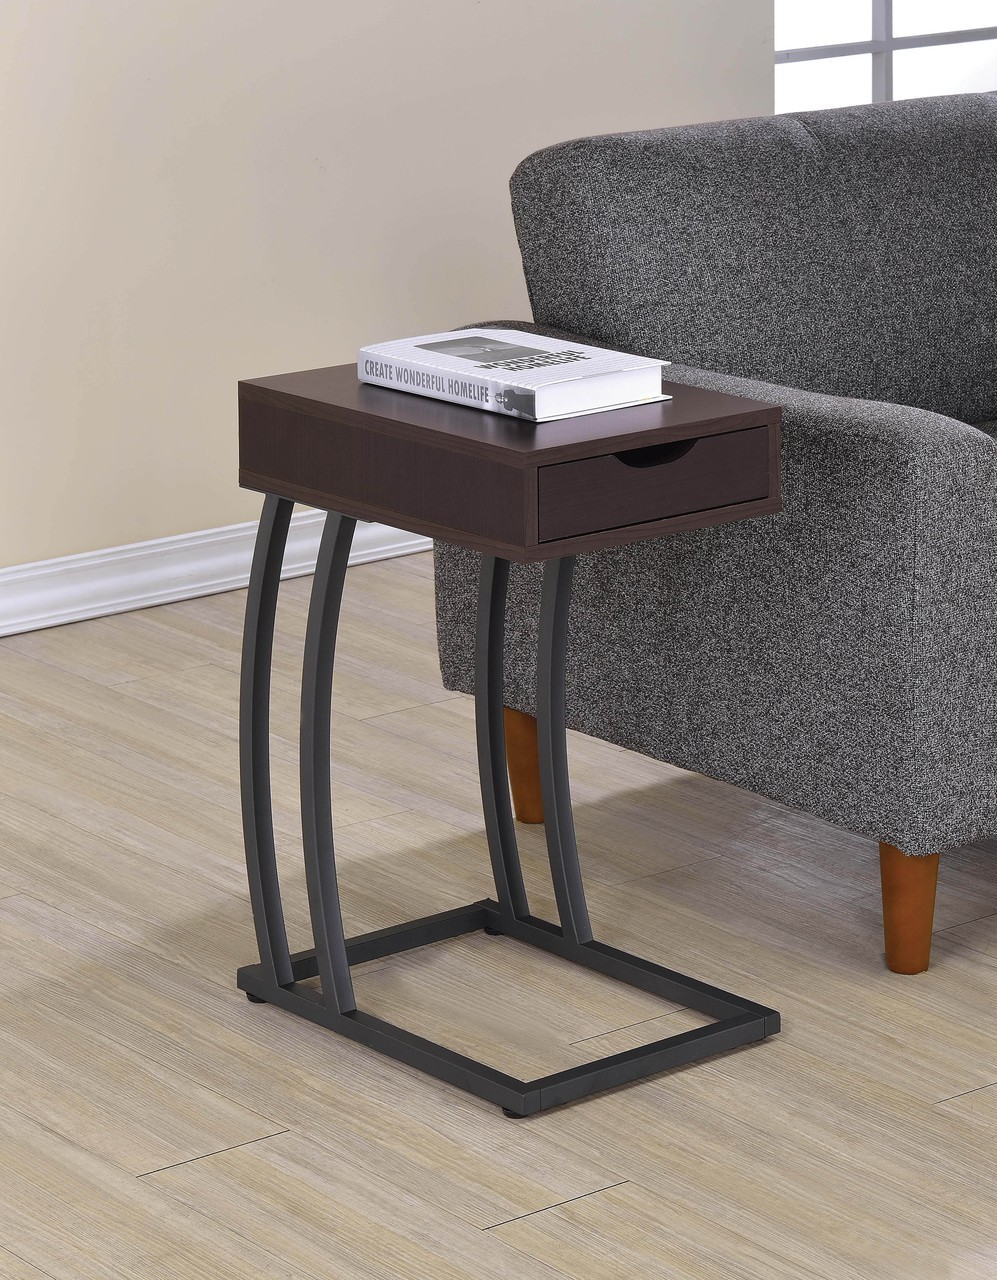 cappuccino accent table with power strip usb ports savvy port chestnut dining pottery barn bookcase farm style bench oak bedside cabinets carpet tile trim strips reclaimed wood